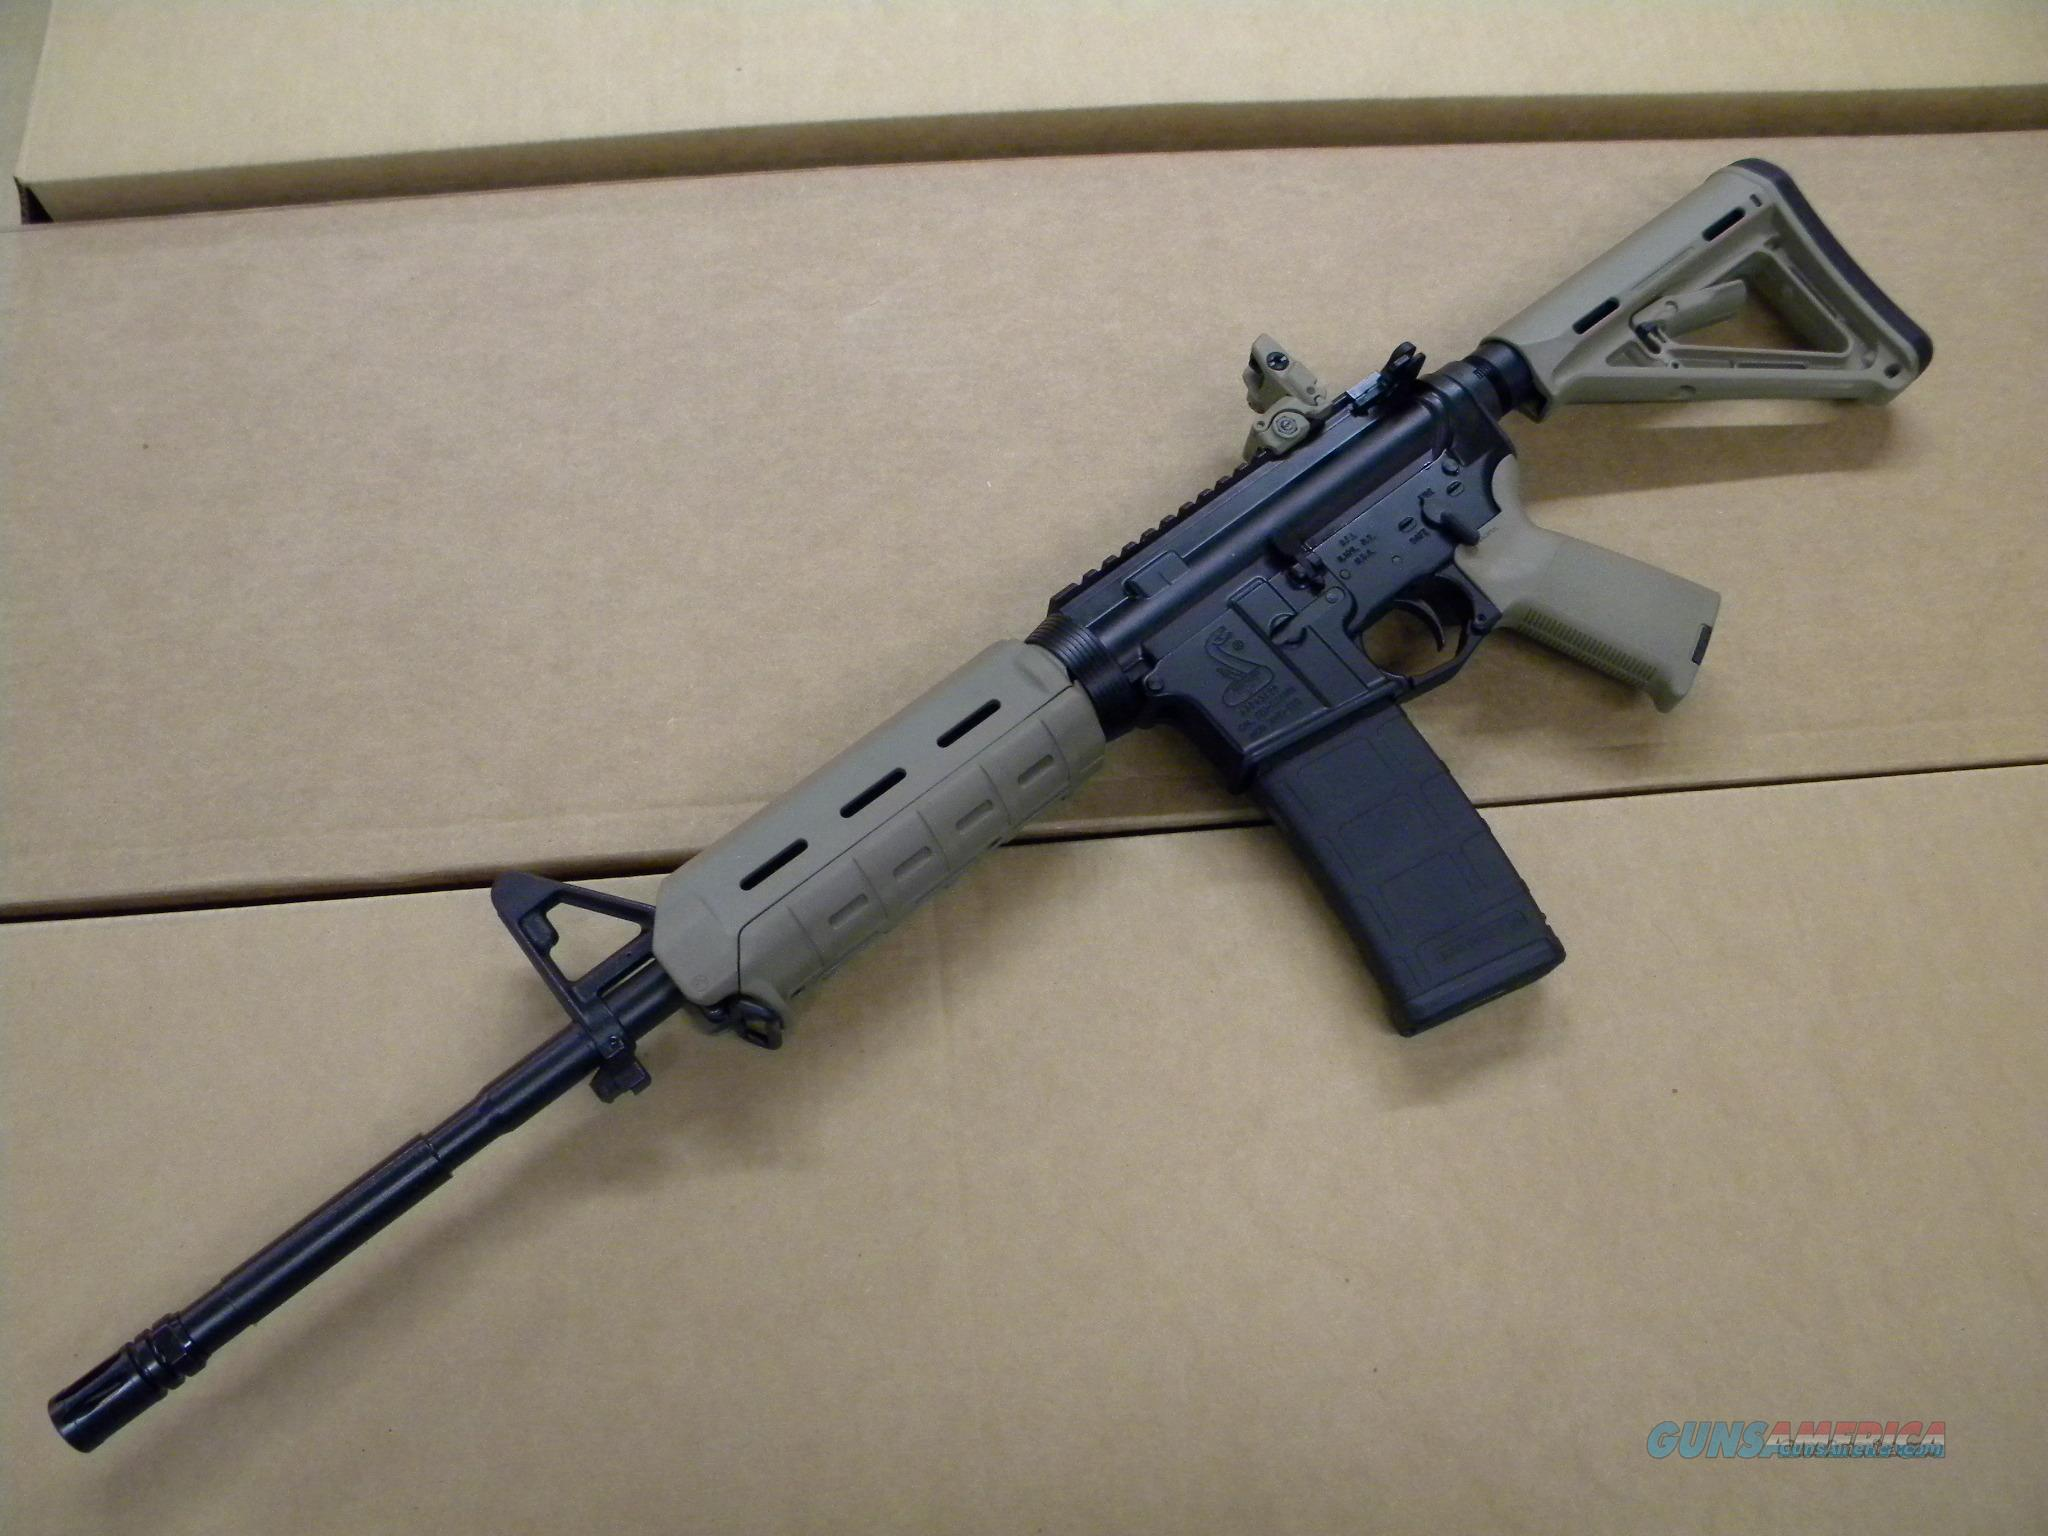 BUSHMASTER M4 A3 MOE CARBINE, DARK EARTH  Guns > Rifles > Bushmaster Rifles > Complete Rifles